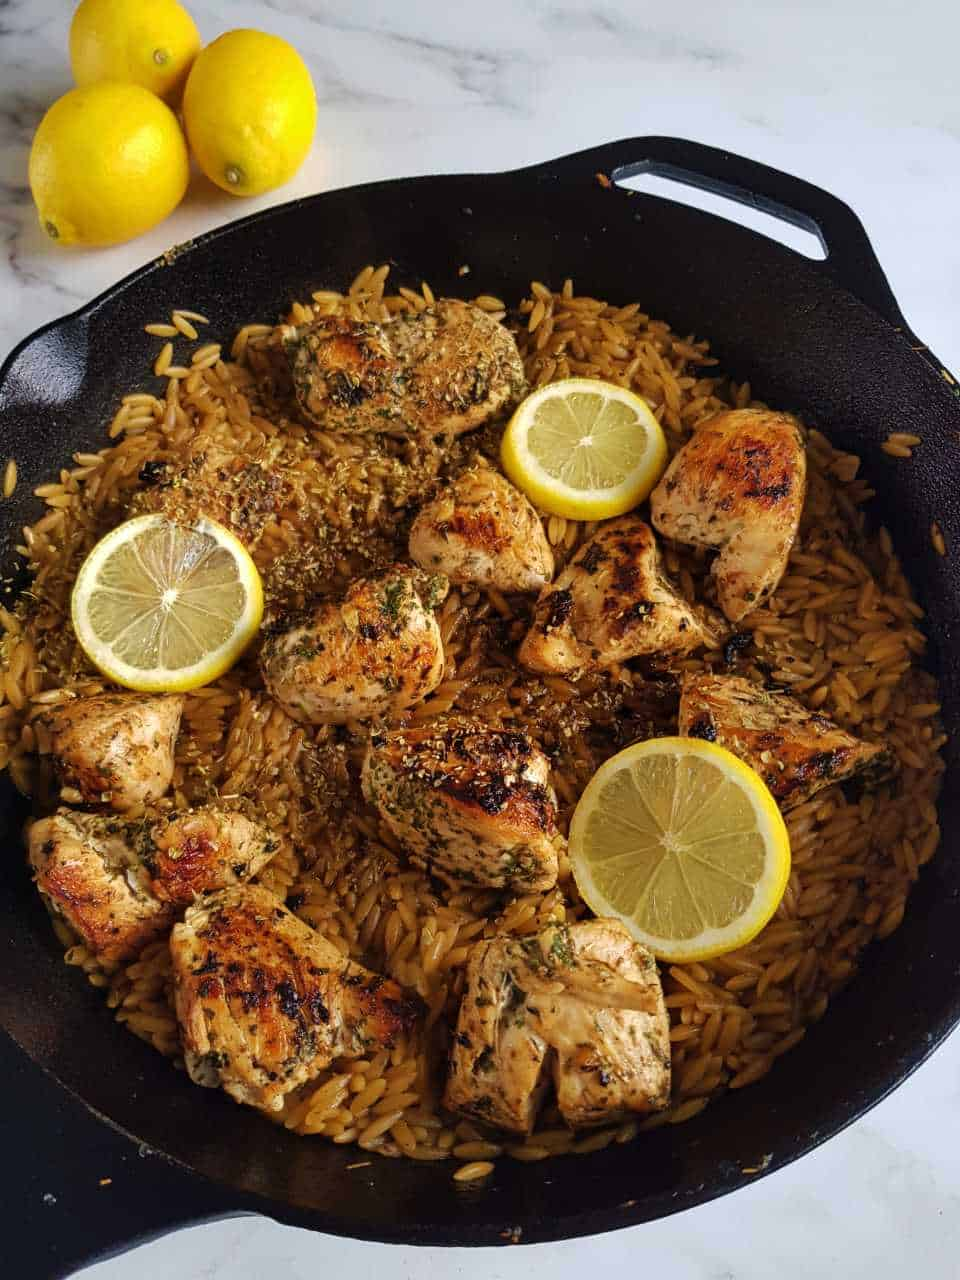 Lemon chicken with orzo in a cast iron pan.